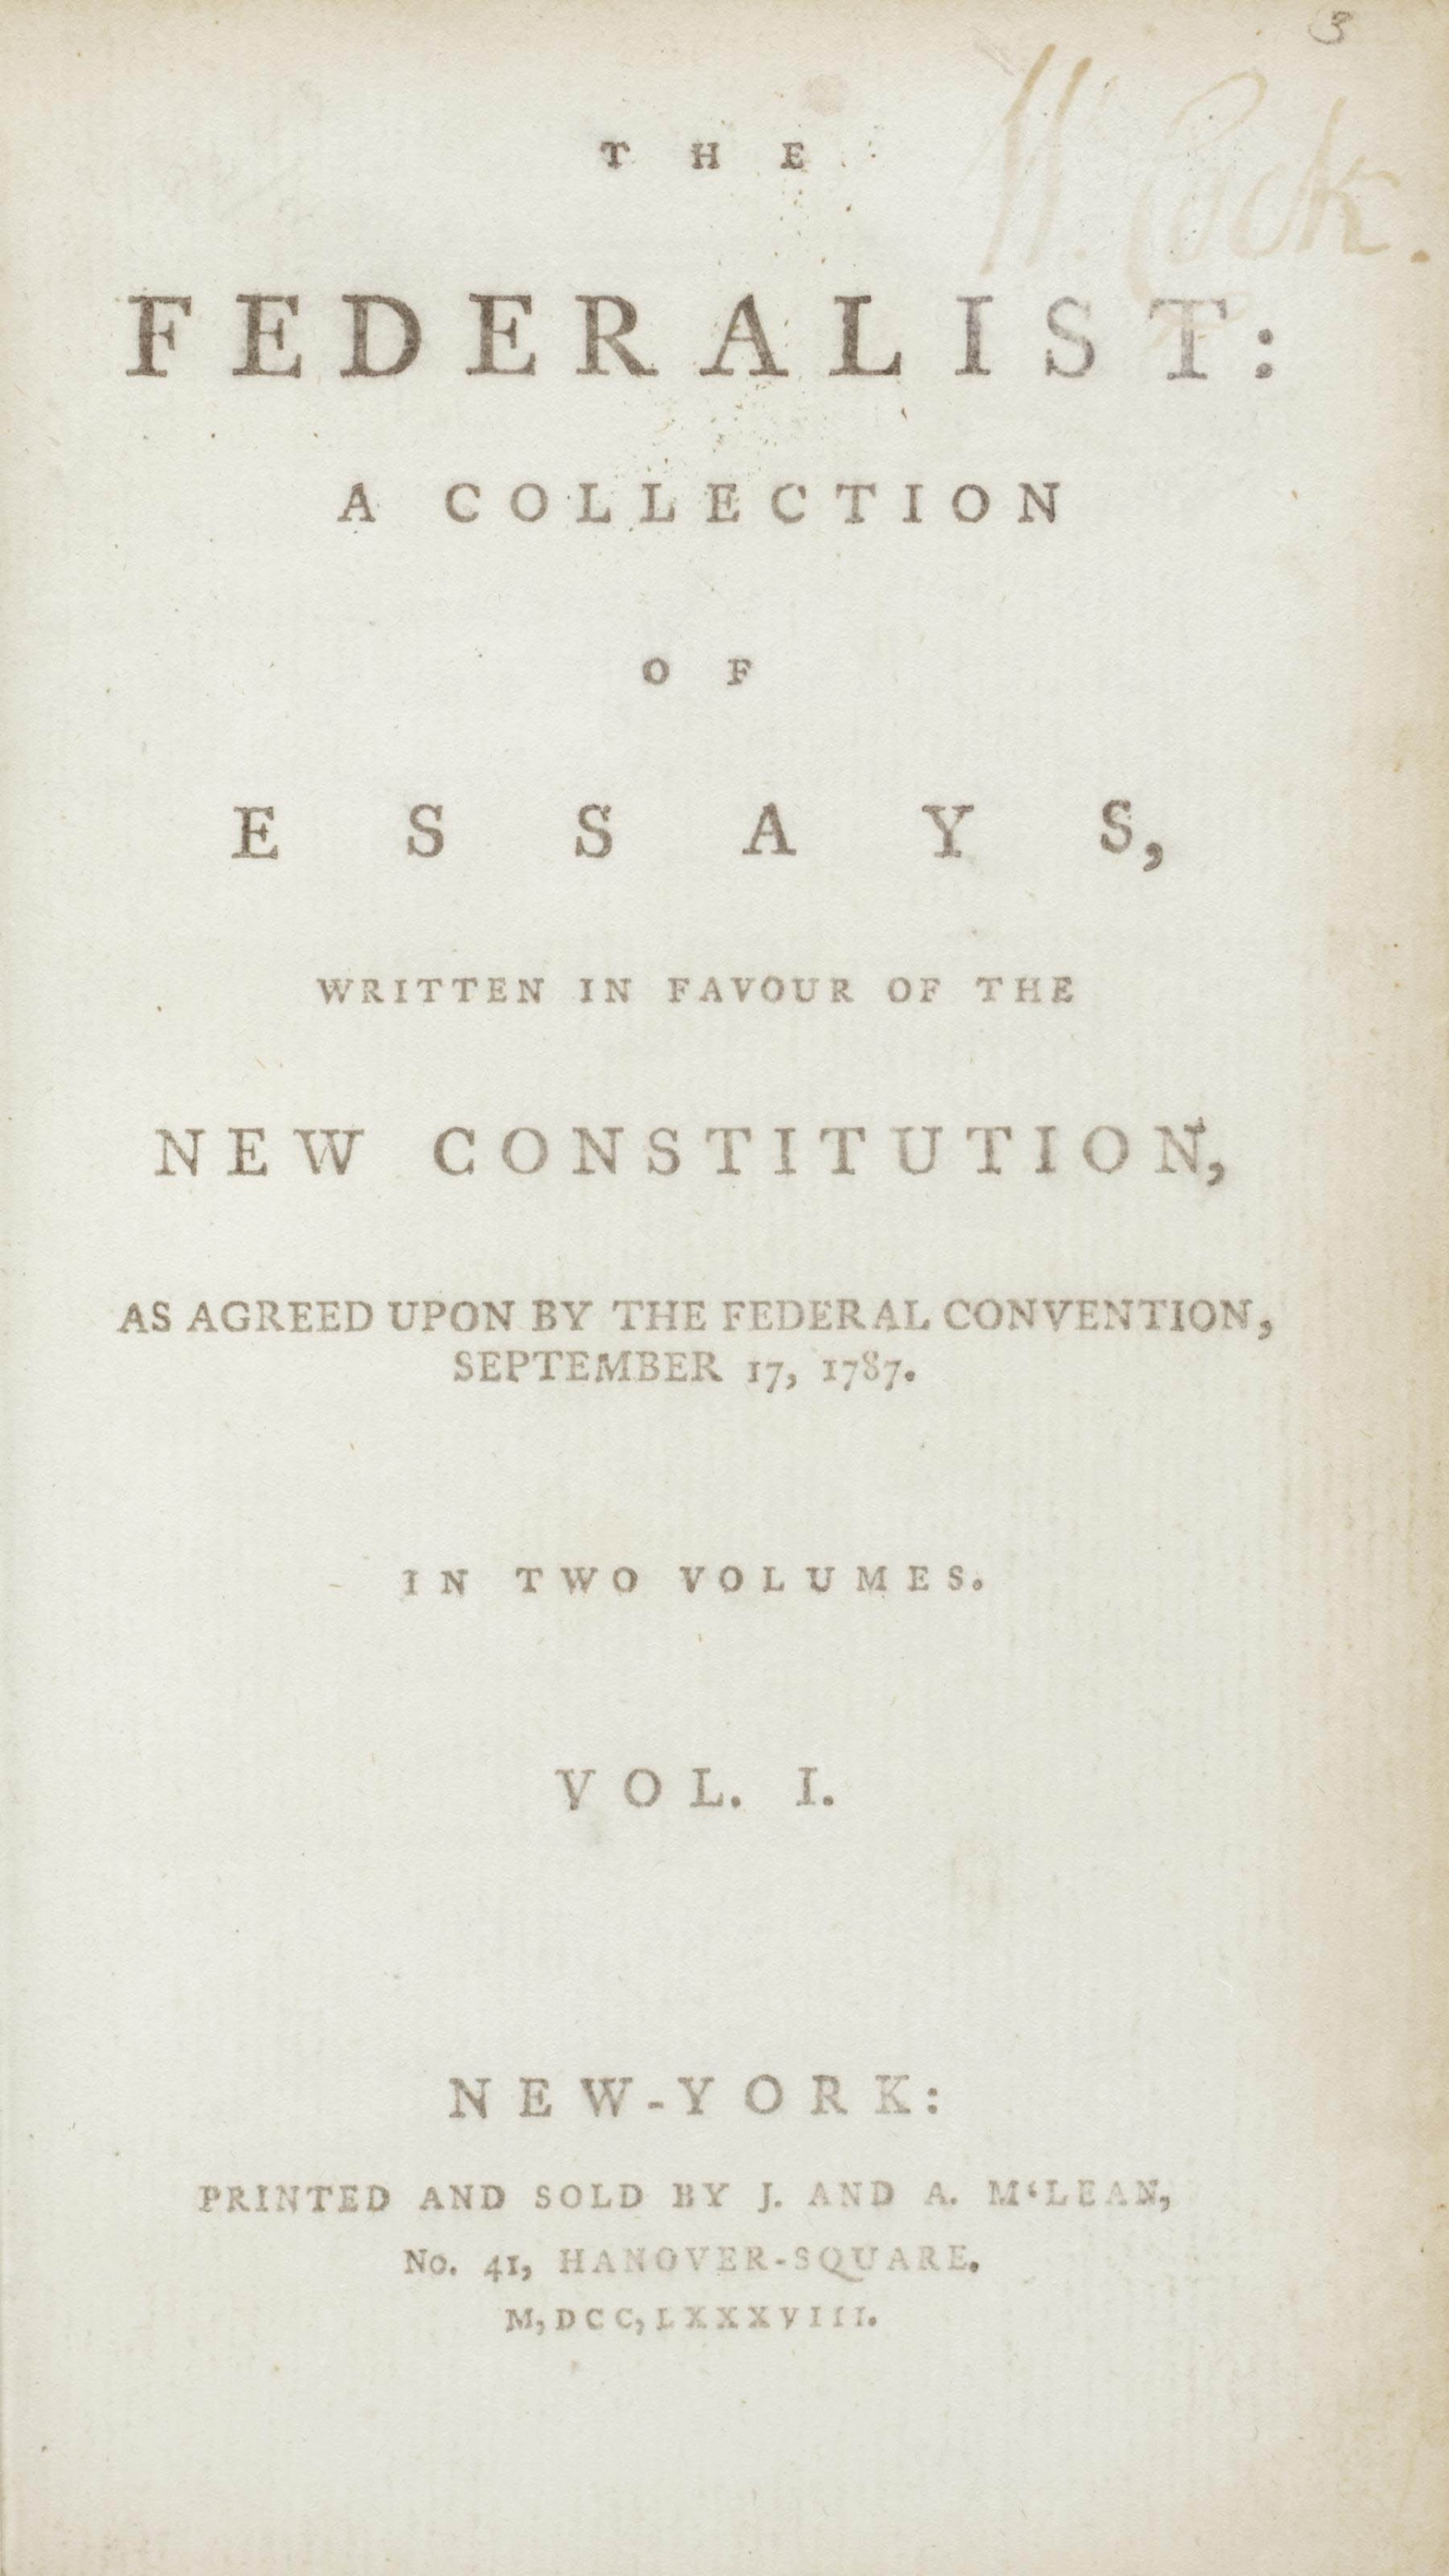 016 Essay Example Alexander Hamilton Essays 2012 Nyr 02622 0043 000the Federalist Papers  James Madison And John Jay Frightening 51 78 Did Wrote1920